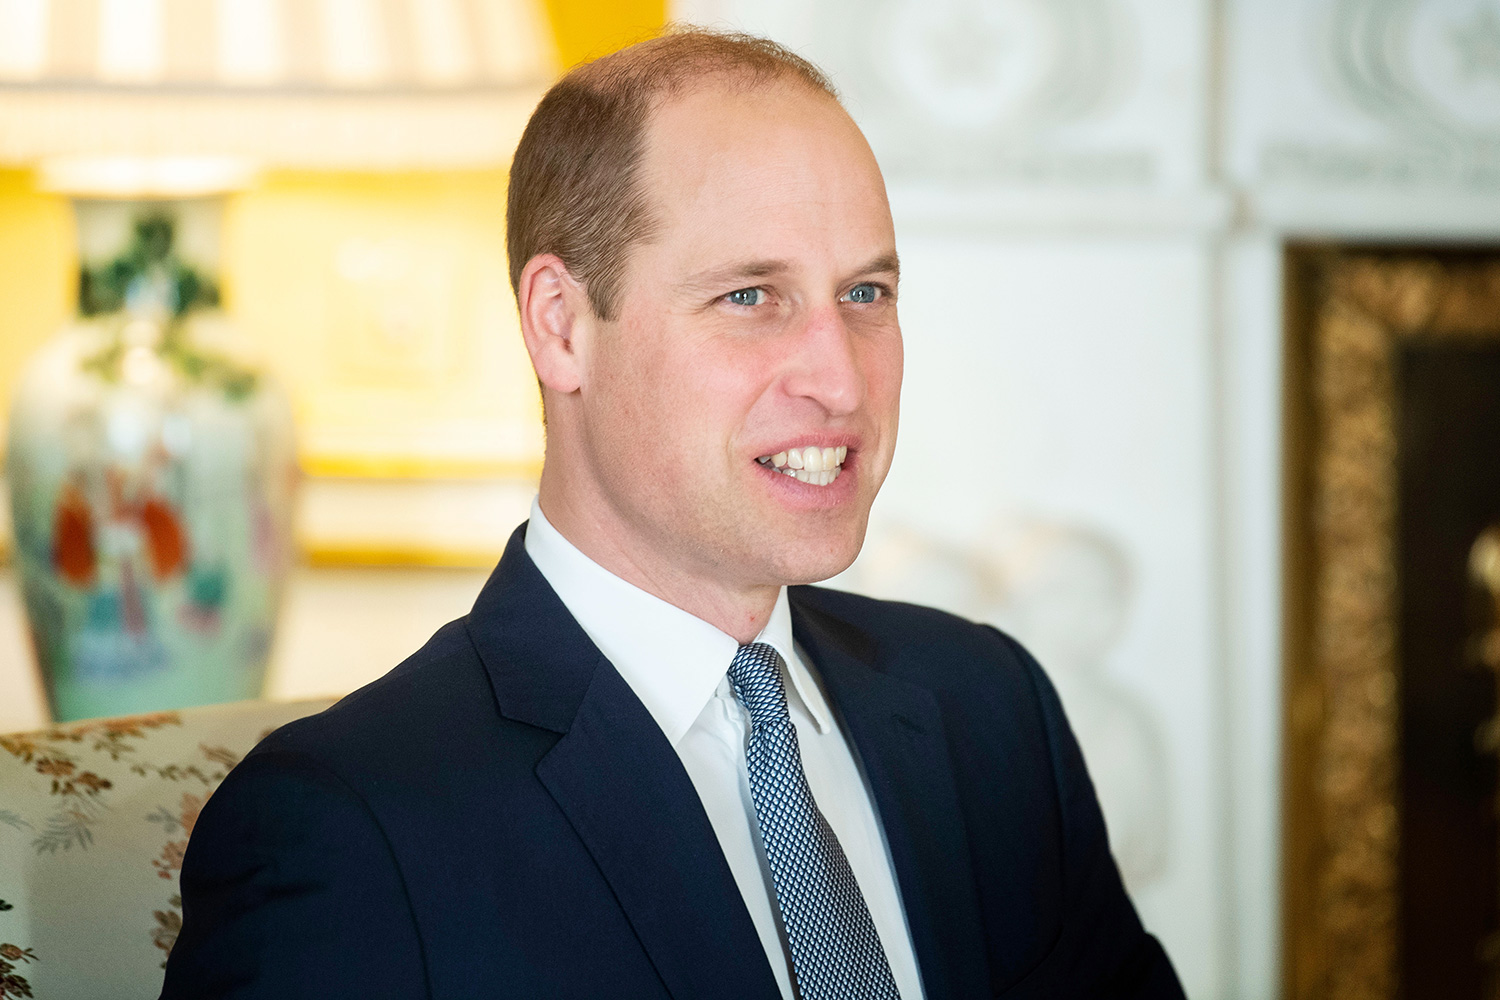 Prince William during an audience at Buckingham Palace Royal audiences at Buckingham Palace, London, UK - 20 Jan 2020